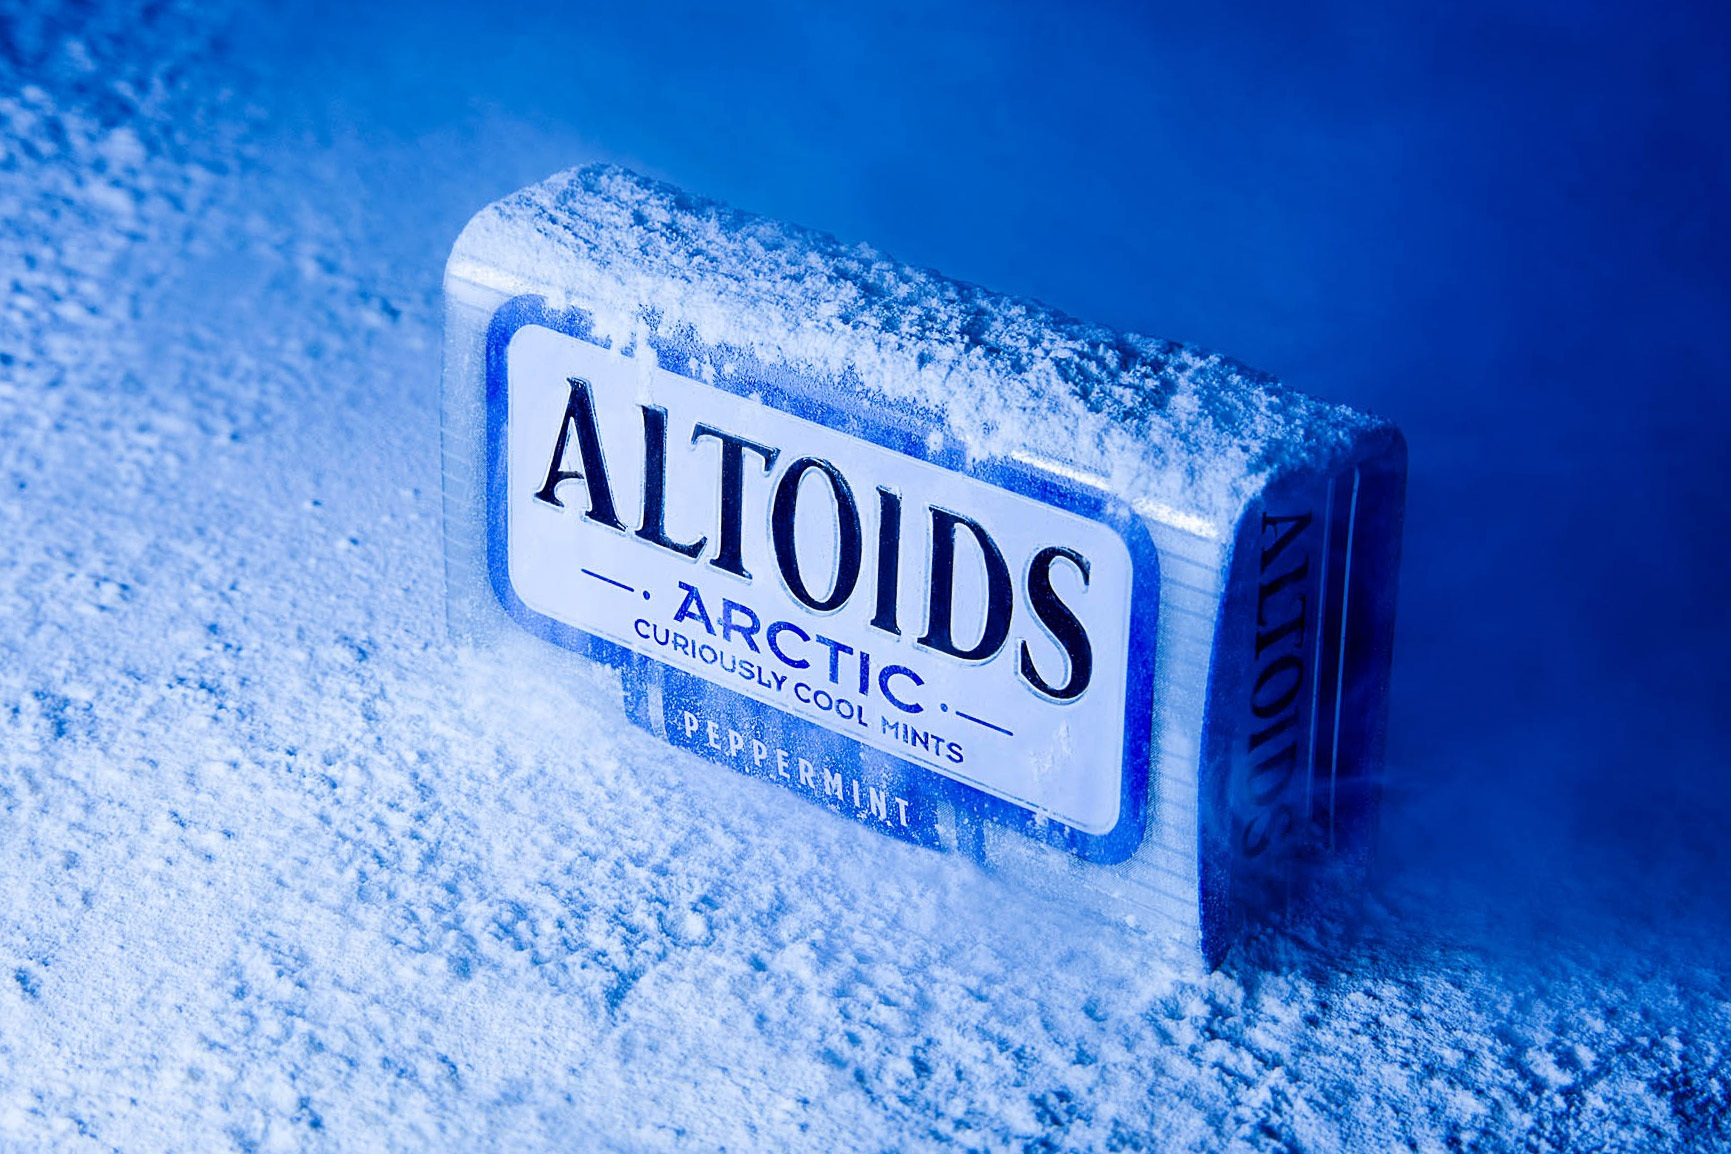 catalog white product altoids